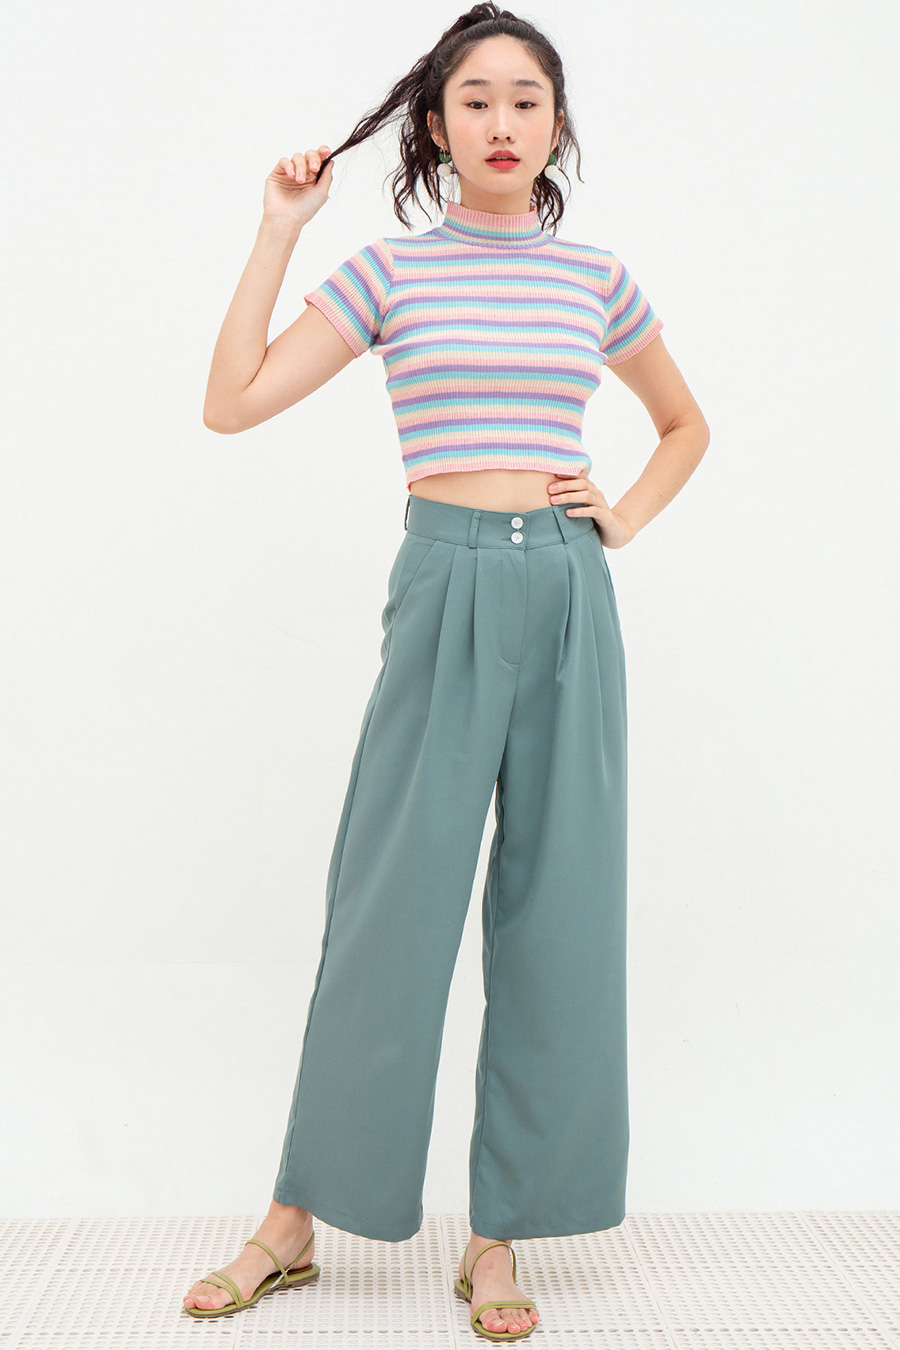 *RESTOCKED* LILIANE PANTS - SEA FOAM